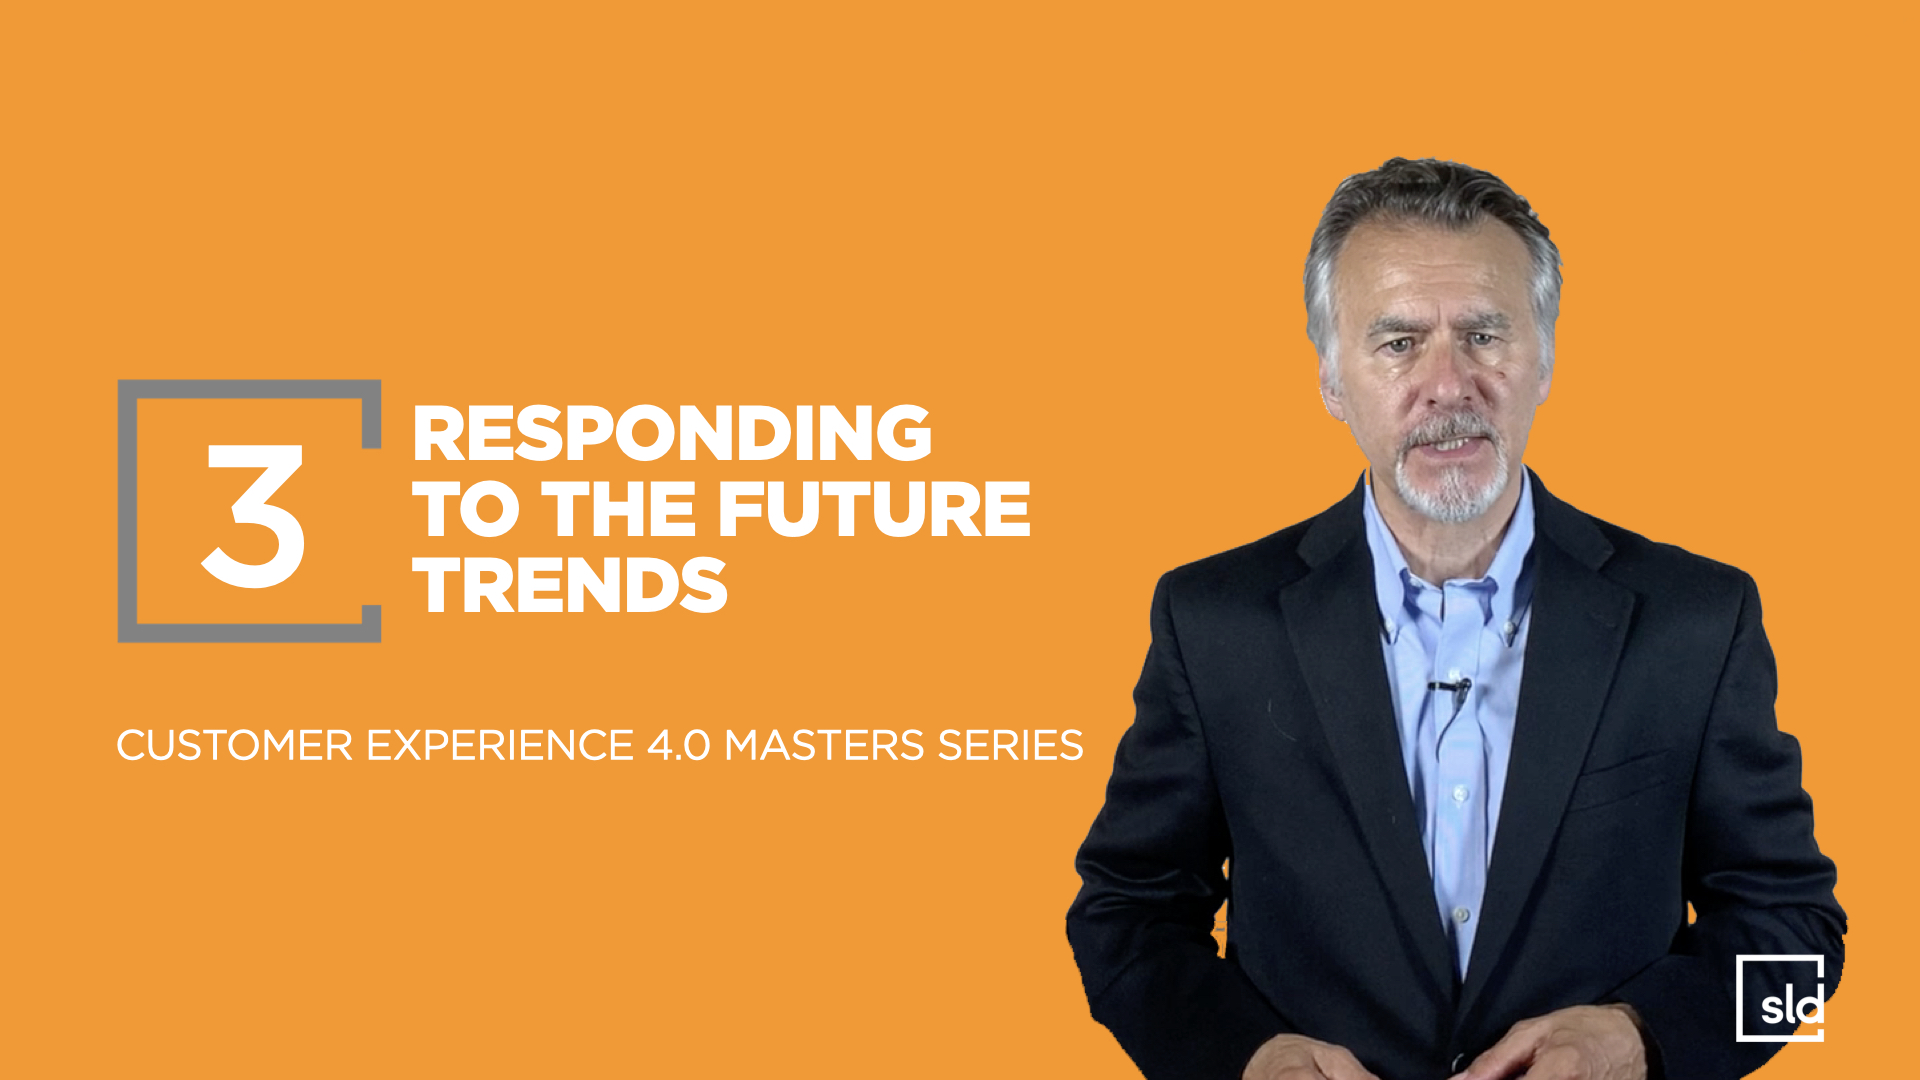 3. Responding to the Future Trends